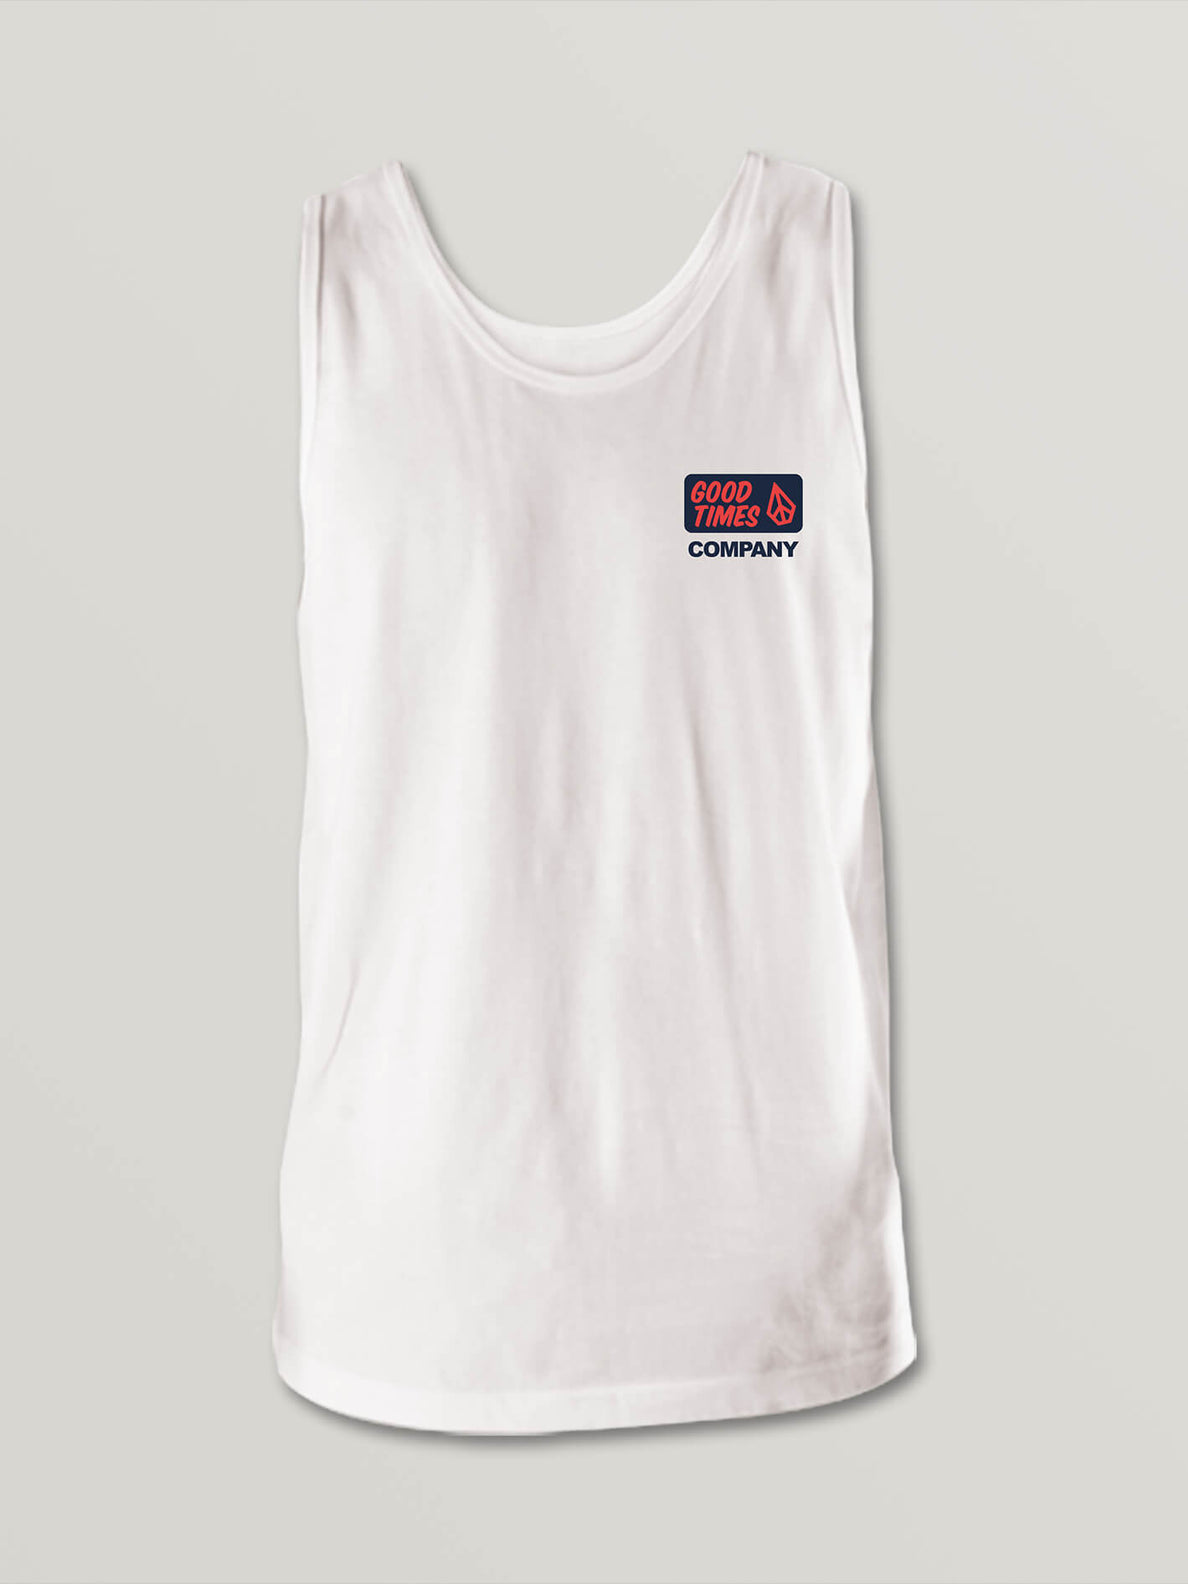 Big Boys Volcom Is Fun Tank In White, Front View